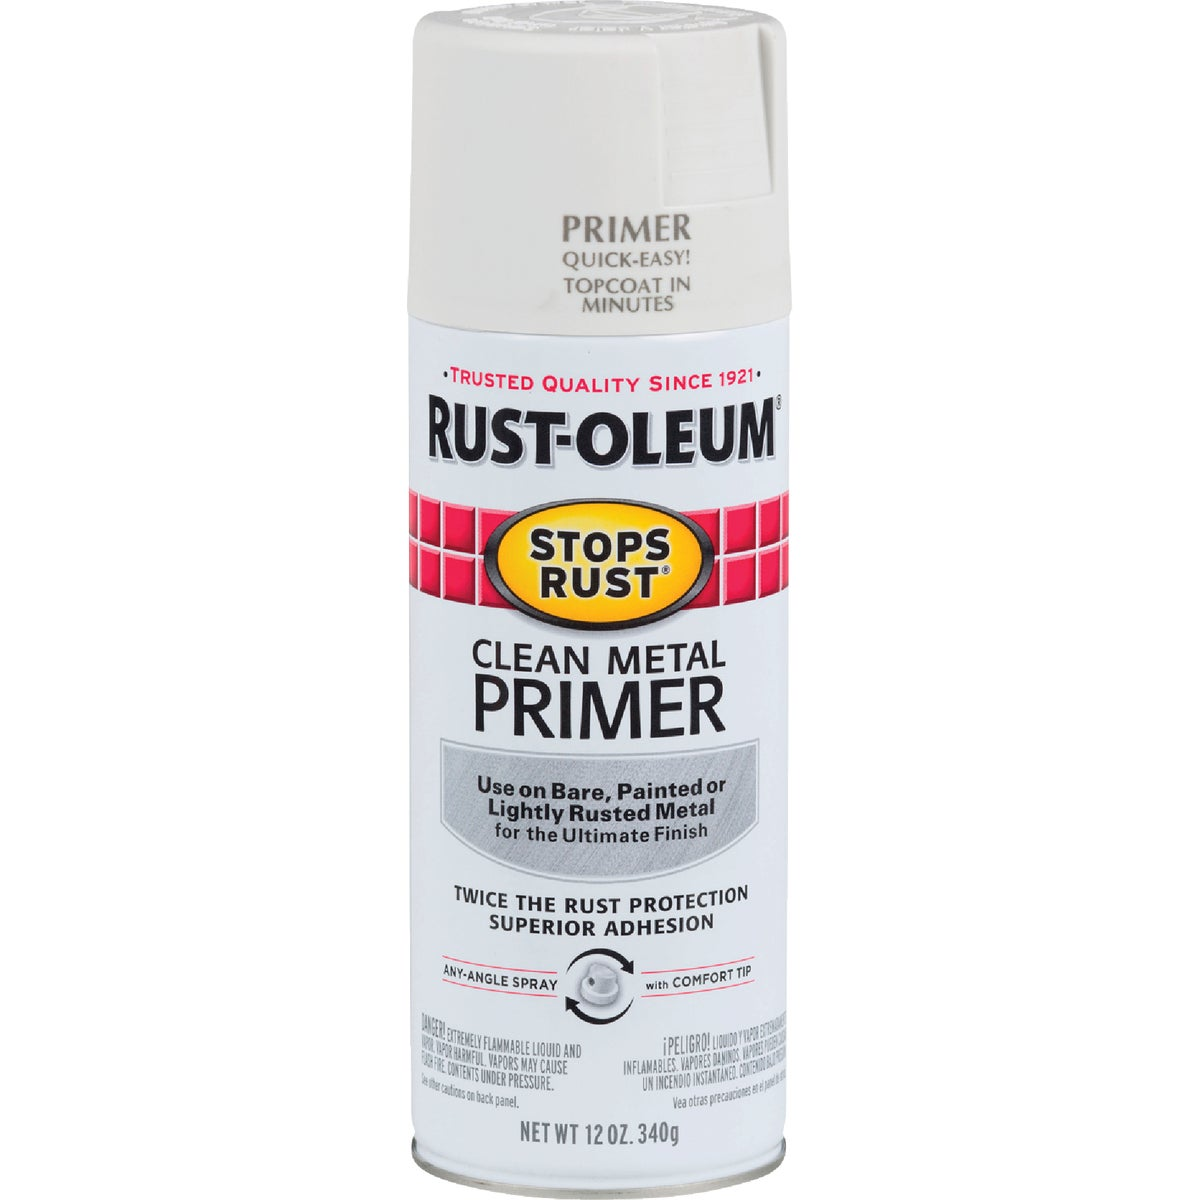 Item 782656, Designed for use on clean bare metal, previously coated or lightly rusted metal. This primer is compatible with Rust-Oleum Stops Rust brand finishes.